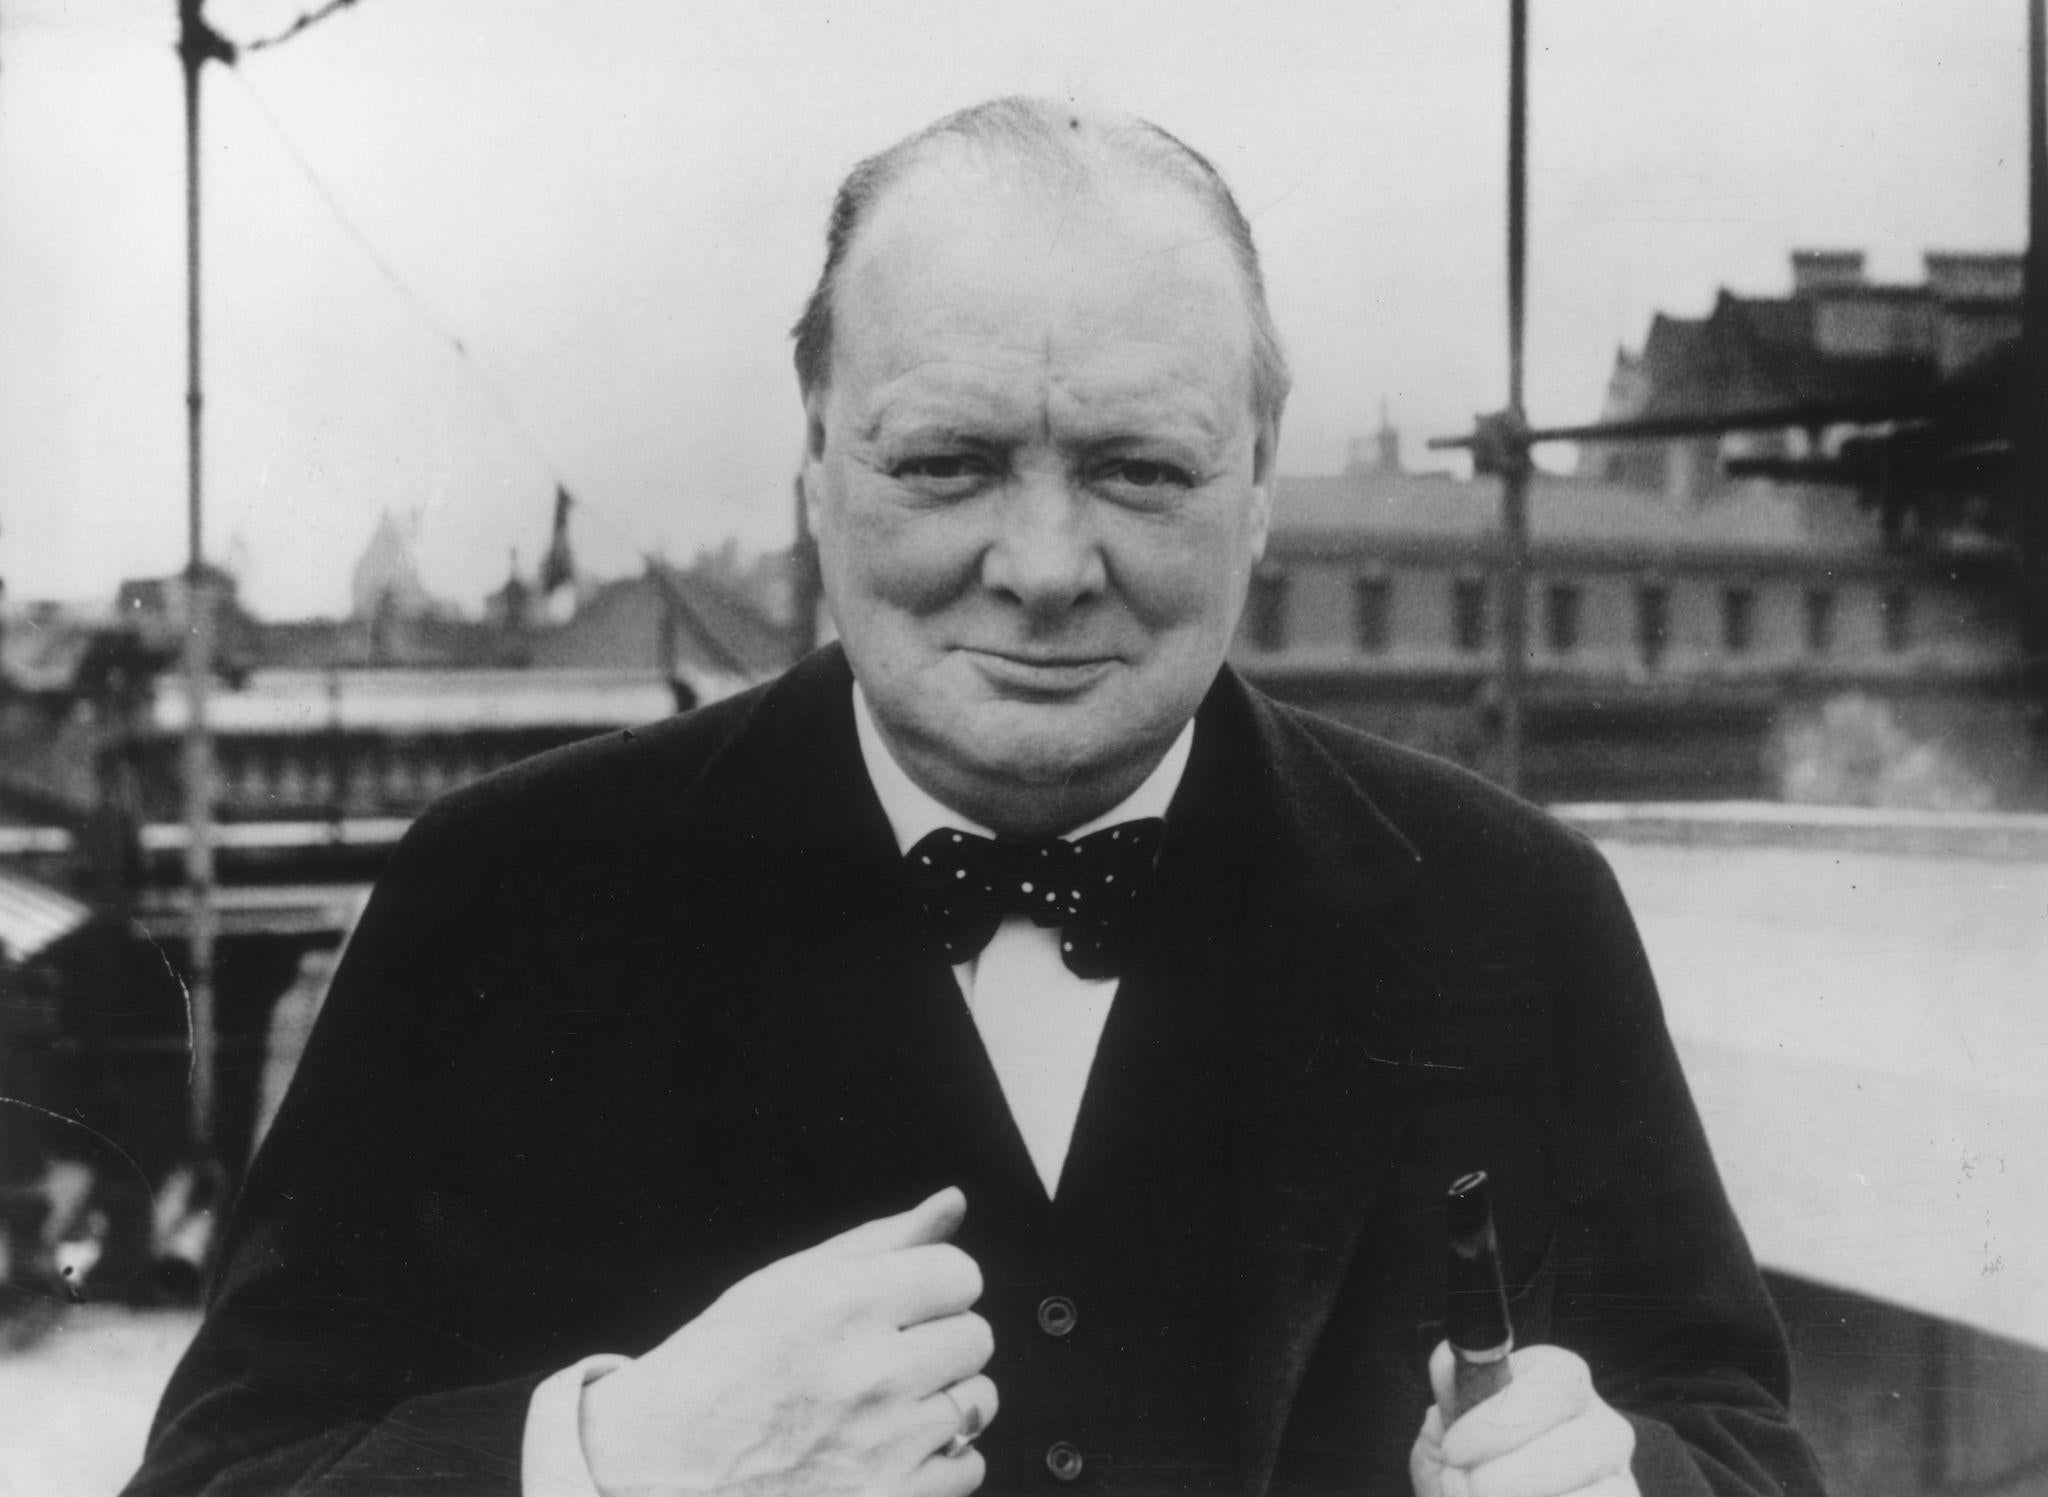 winston churchill essay moses Winston churchill is an excellent example of greatness because in the face of adversity( the second world war ) he excelled and he persevered through his so called `wilderness years` and then excelled as britain's war time leader  churchill's dogged perseverance to express exactly what he thought was the best possible way forward for britain meant that he was disliked by many in parliament but also admired by many at the same time .